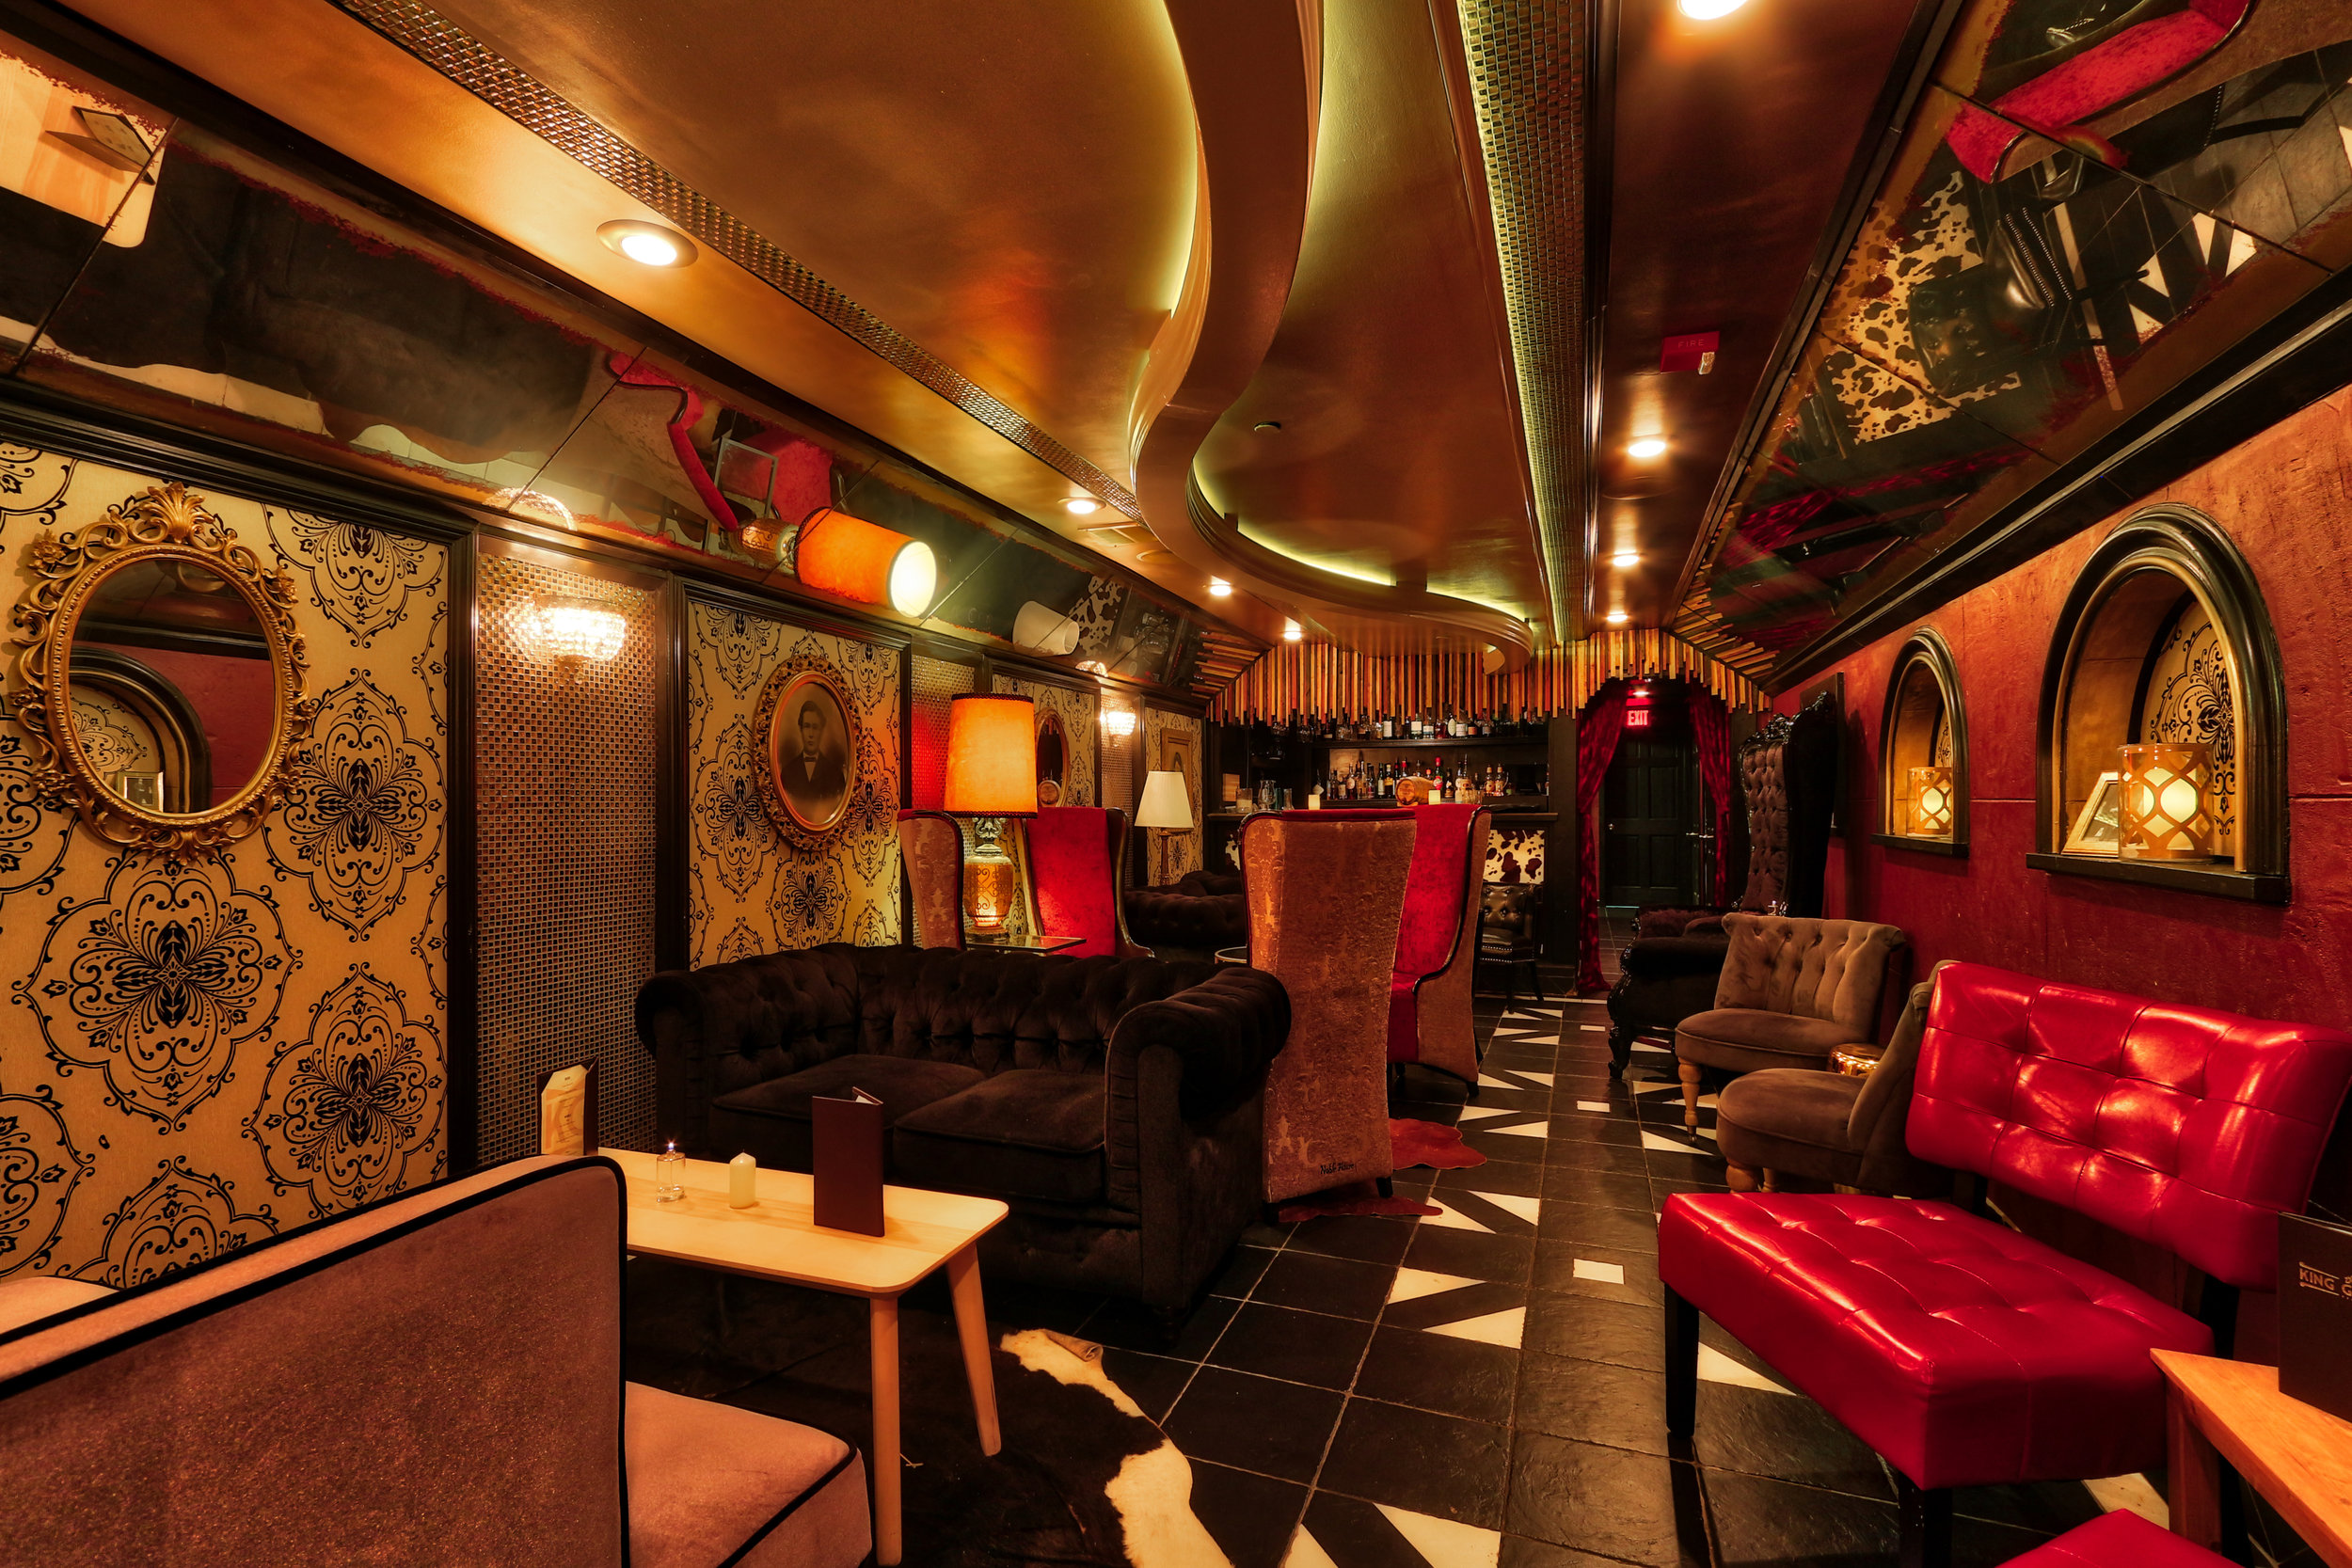 The King George Club - This small, intimate bar and lounge features lavish soft seating, extraordinary beverages, and classy entertainment all tucked away in an old world Vegas style atmosphere. Private bathrooms and exclusive bartenders. More than delivers on the